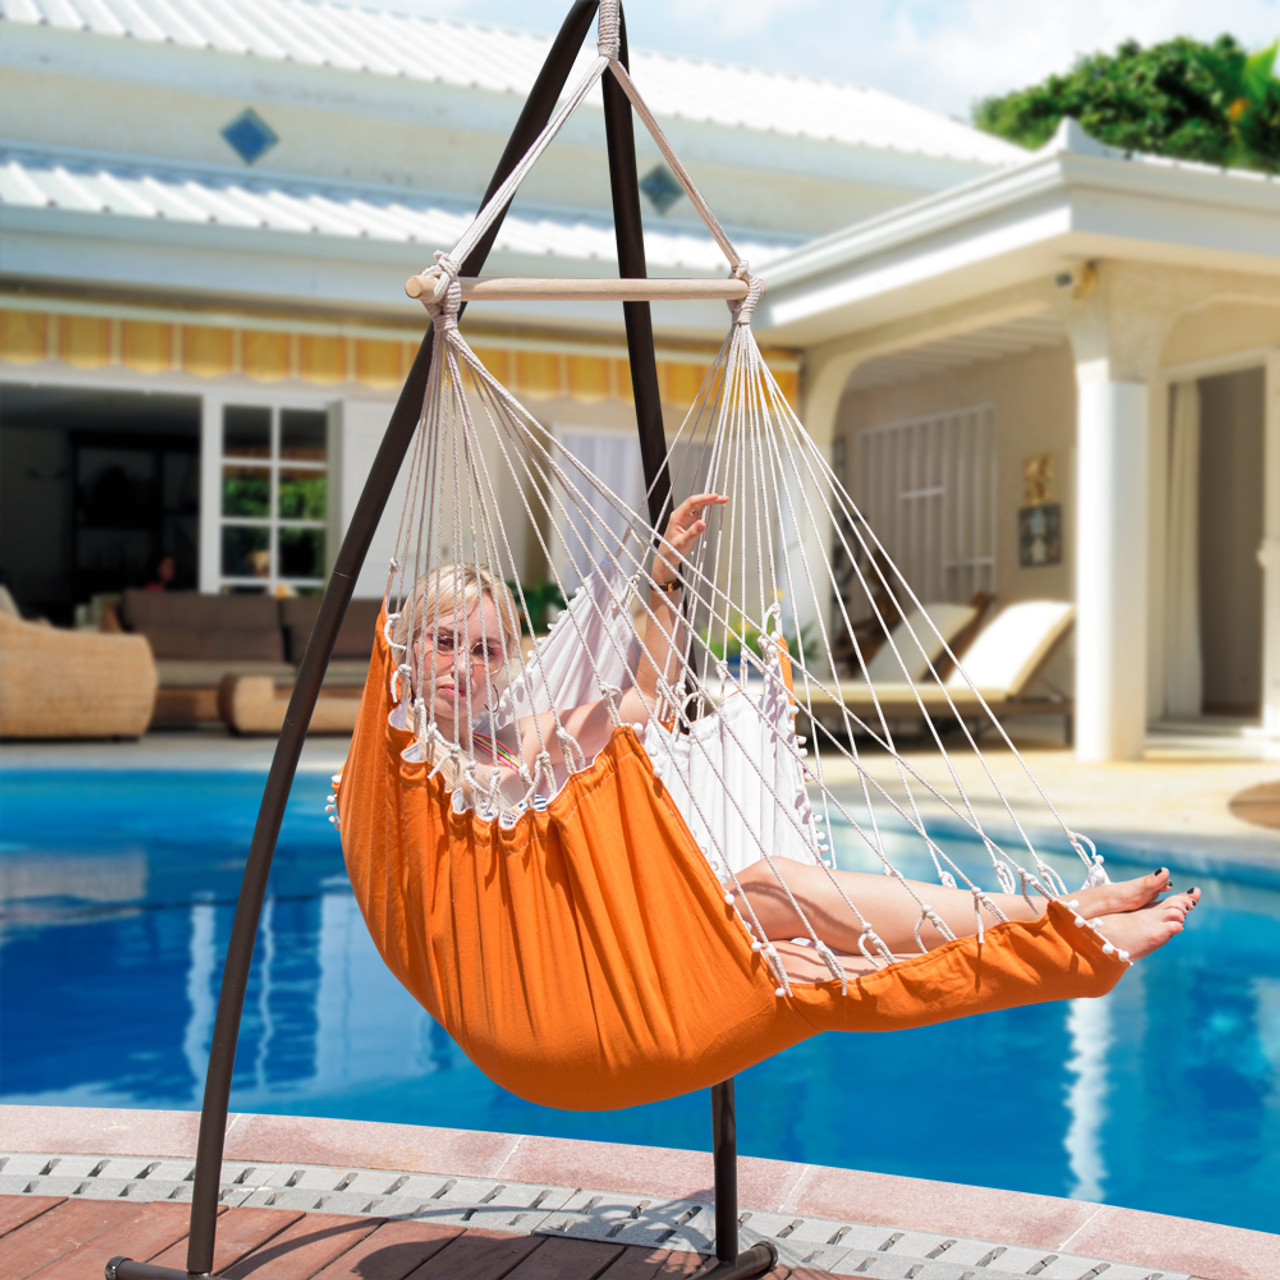 Hanging Air Chair with Pillow, Footrest, Drink Holder (Black)